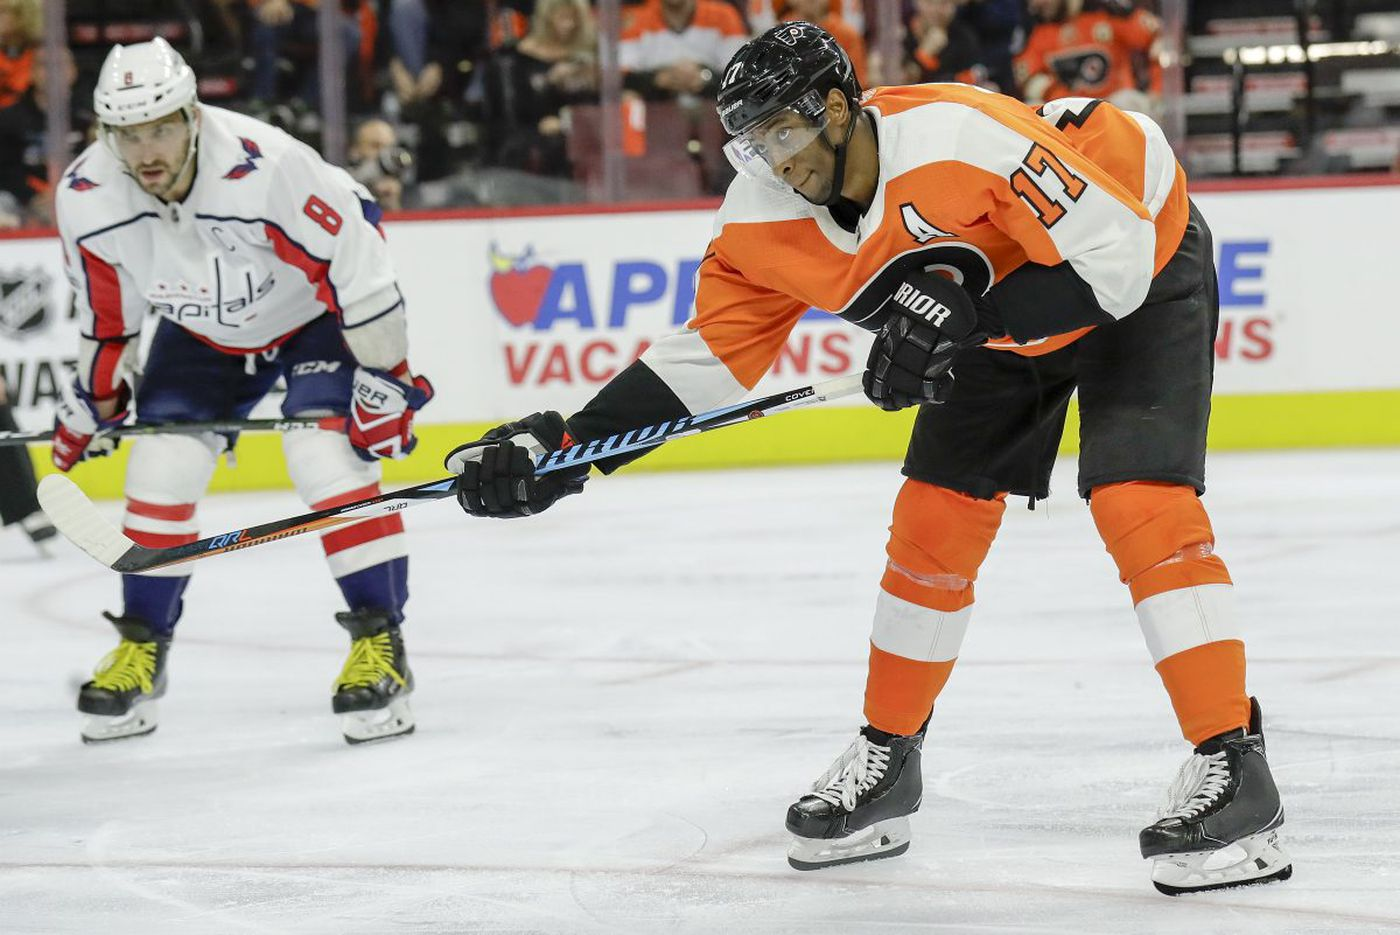 Preview: Flyers seek first win this season vs. Penguins